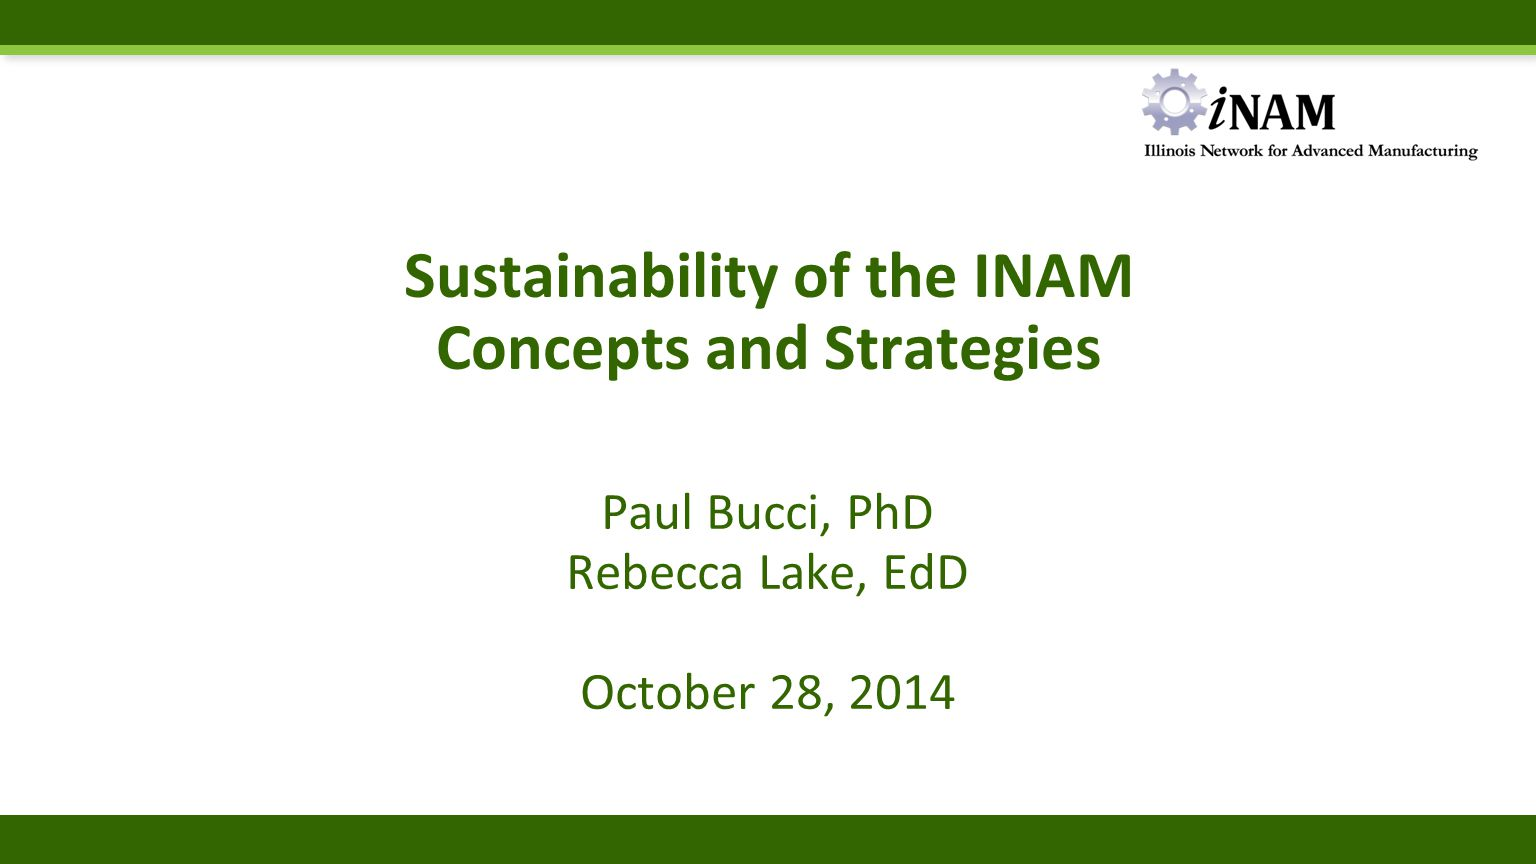 INAM's Sustainability Plan Federal applications (DOL, DOE, etc.) require a Sustainability Plan to be included in grant submissions.